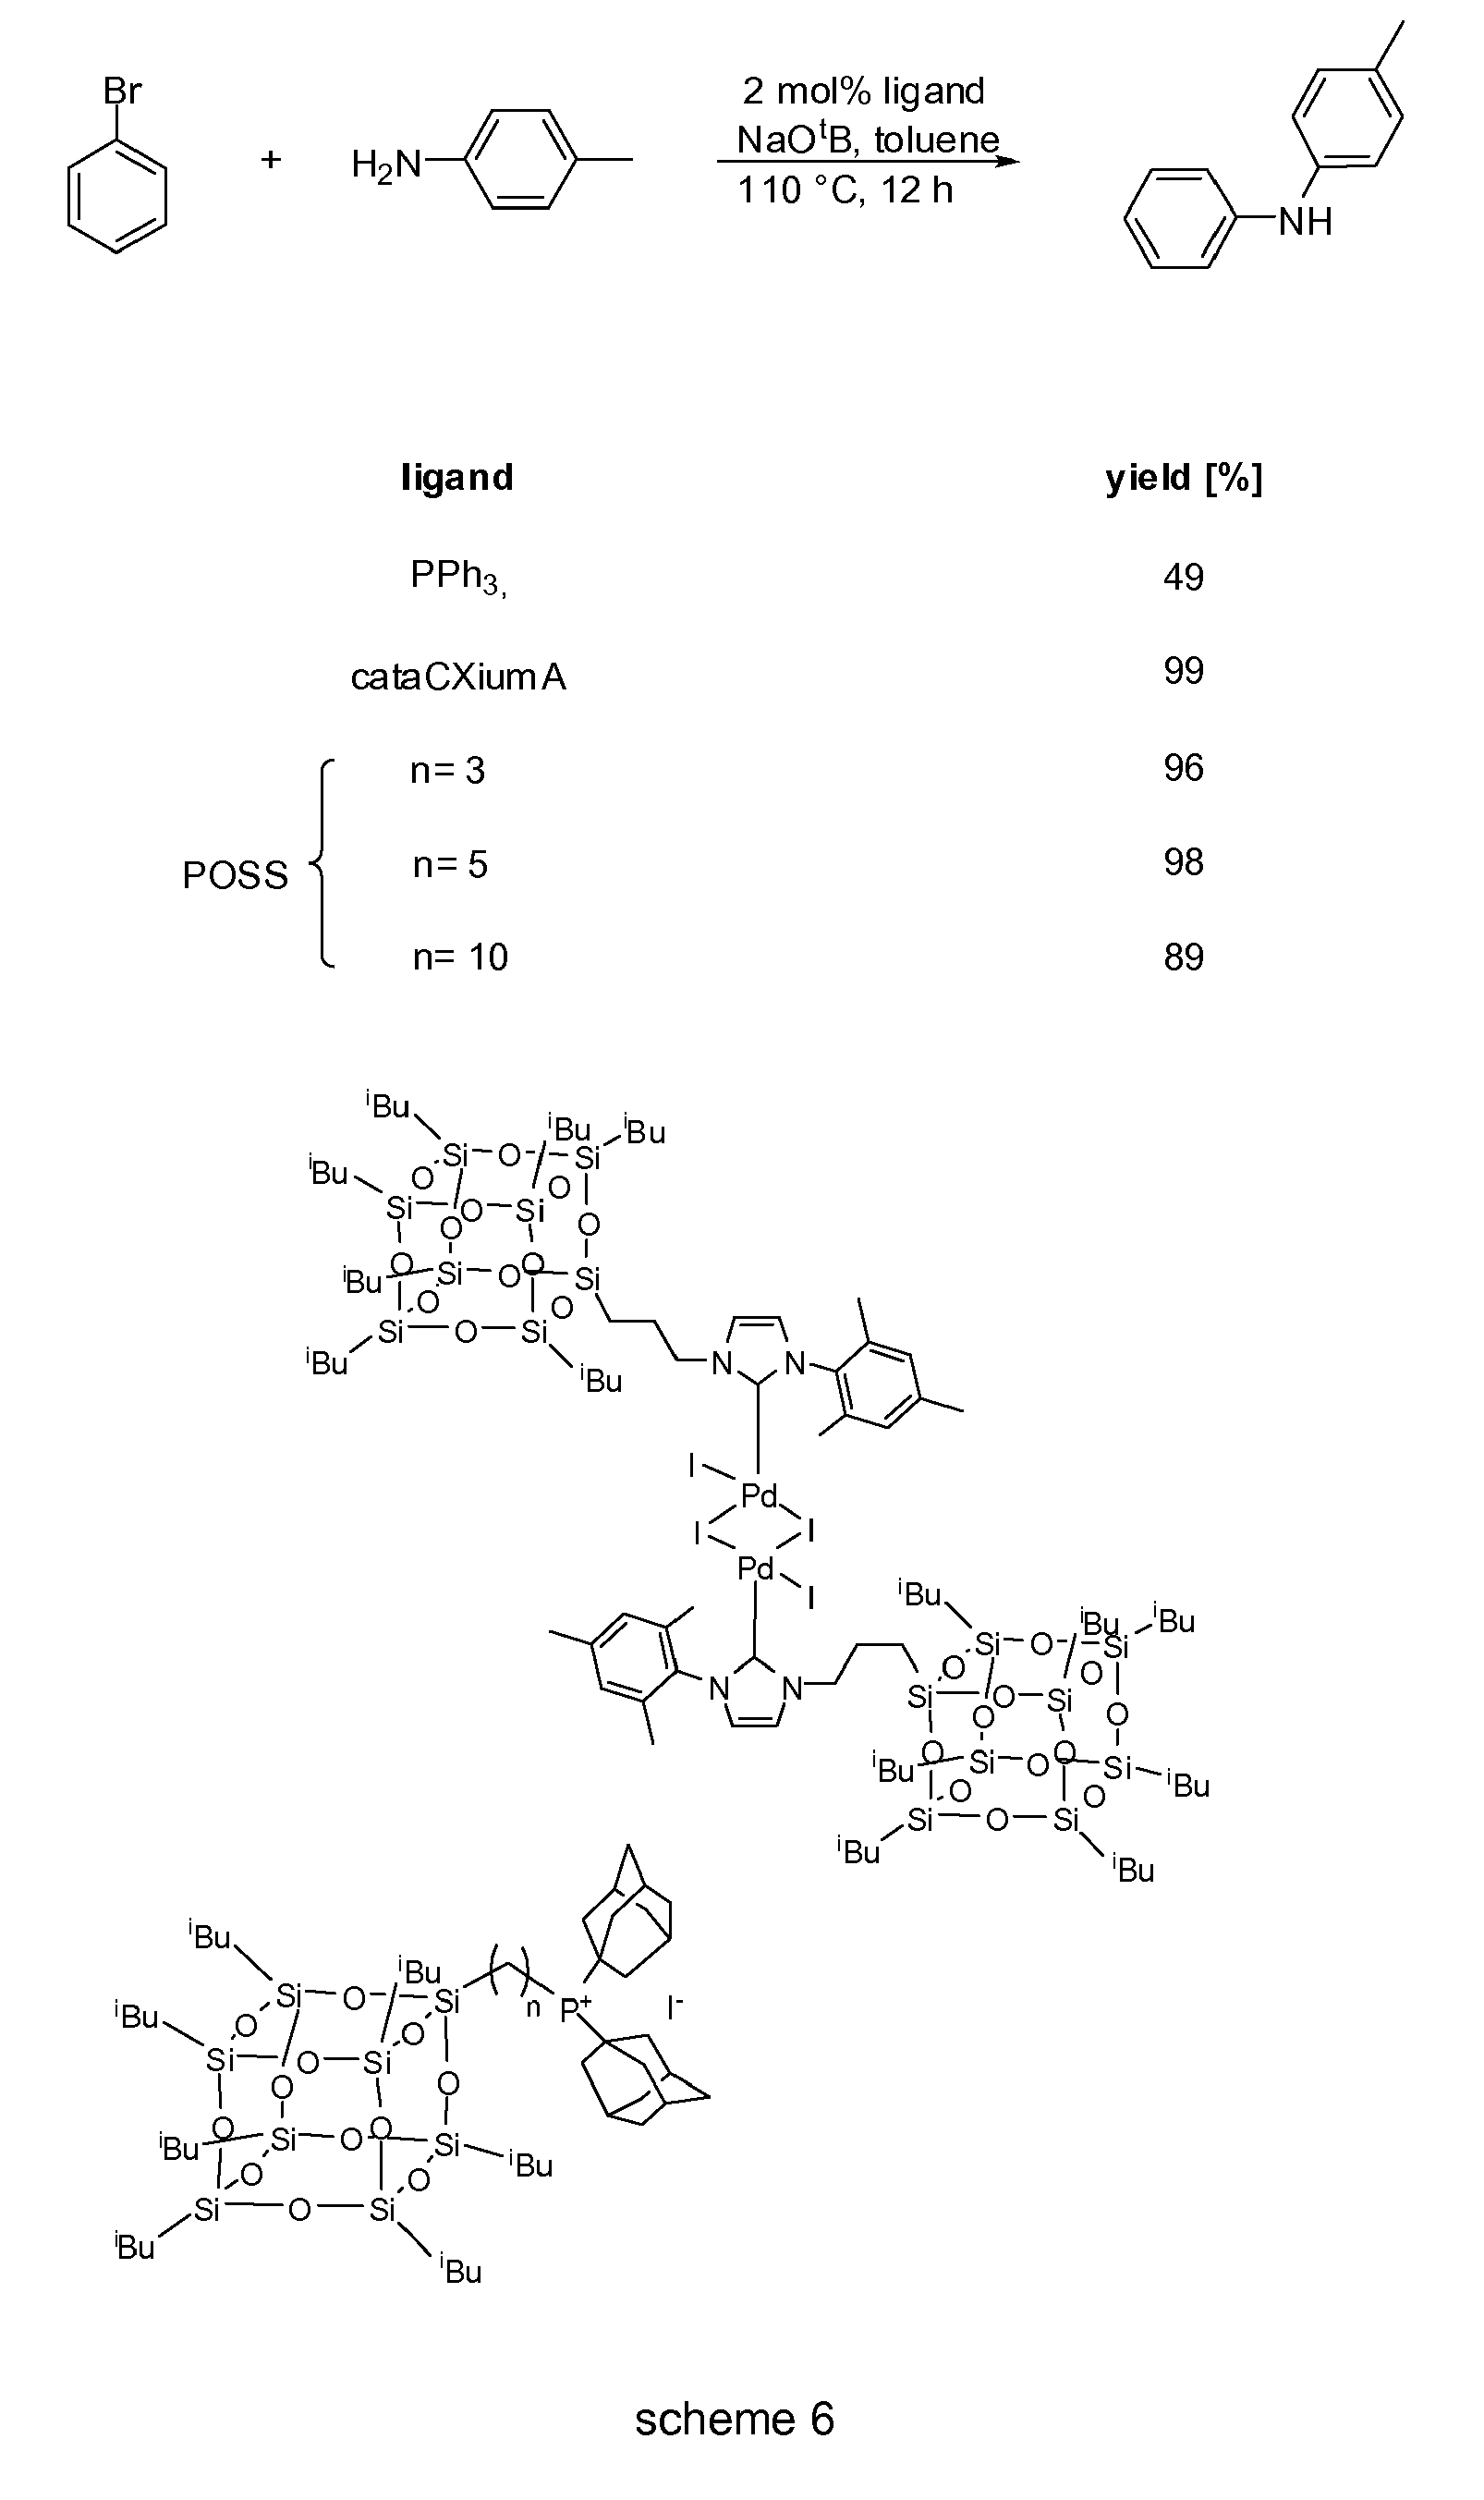 Ep2368894a1 Polysilsesquioxane Poss Linked Imidazole Based Carbene And Phosphine Ligands For Transition Metal Catalysts Google Patents